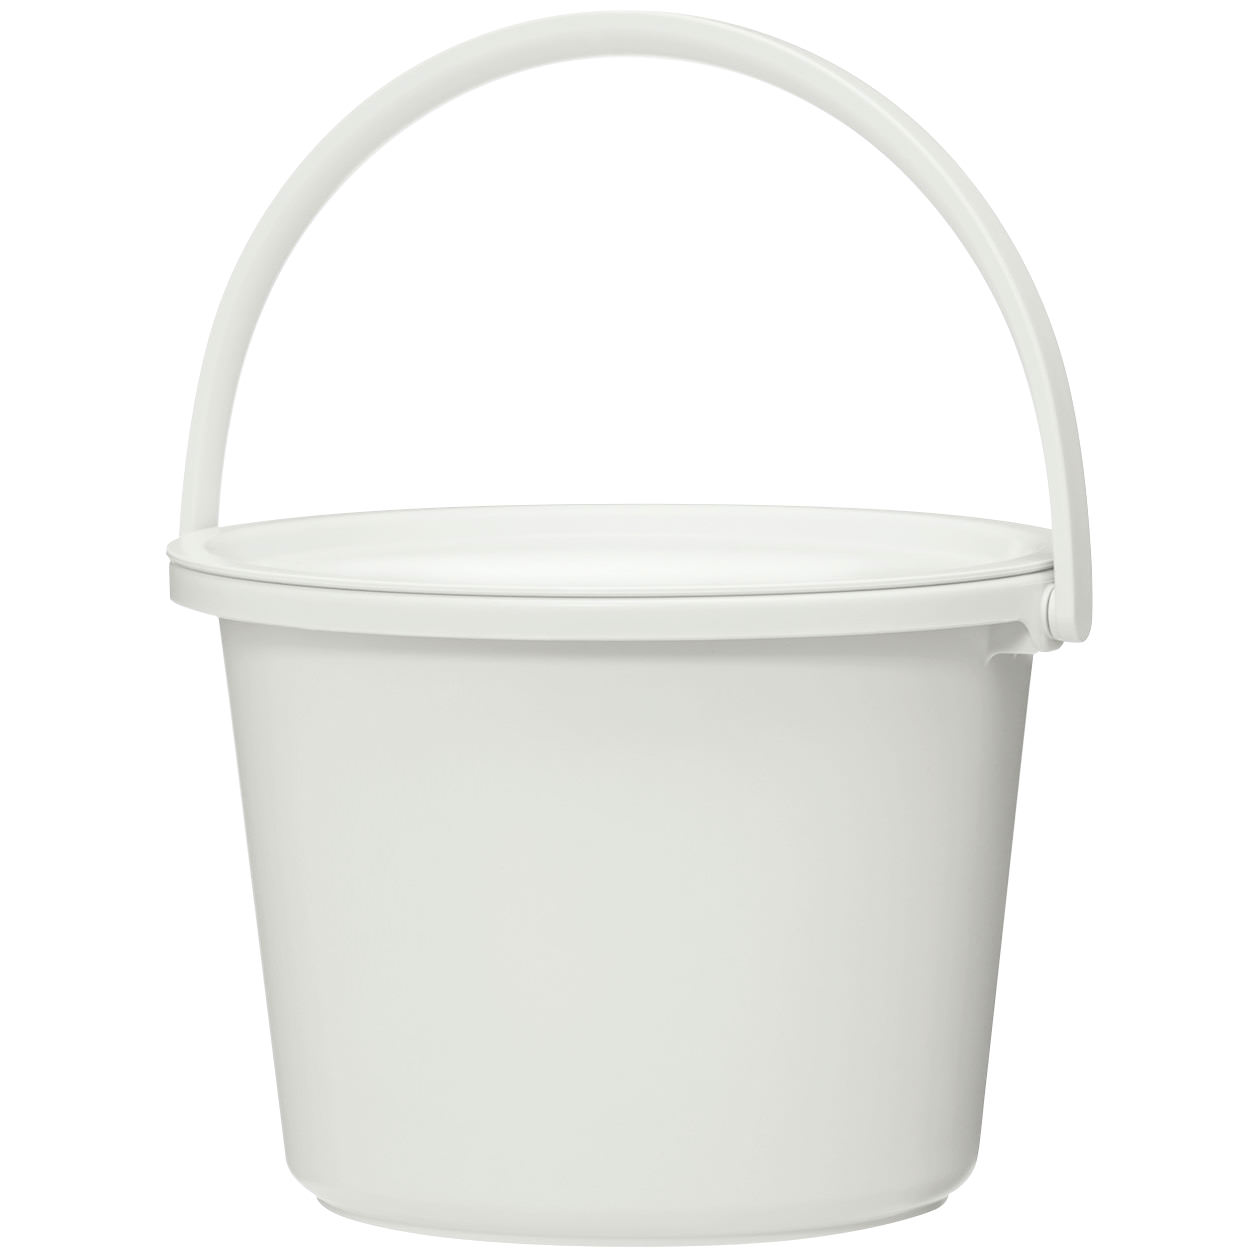 (OVERSEAS SPEC) POLYPROPYLENE BUCKET / WITH LID